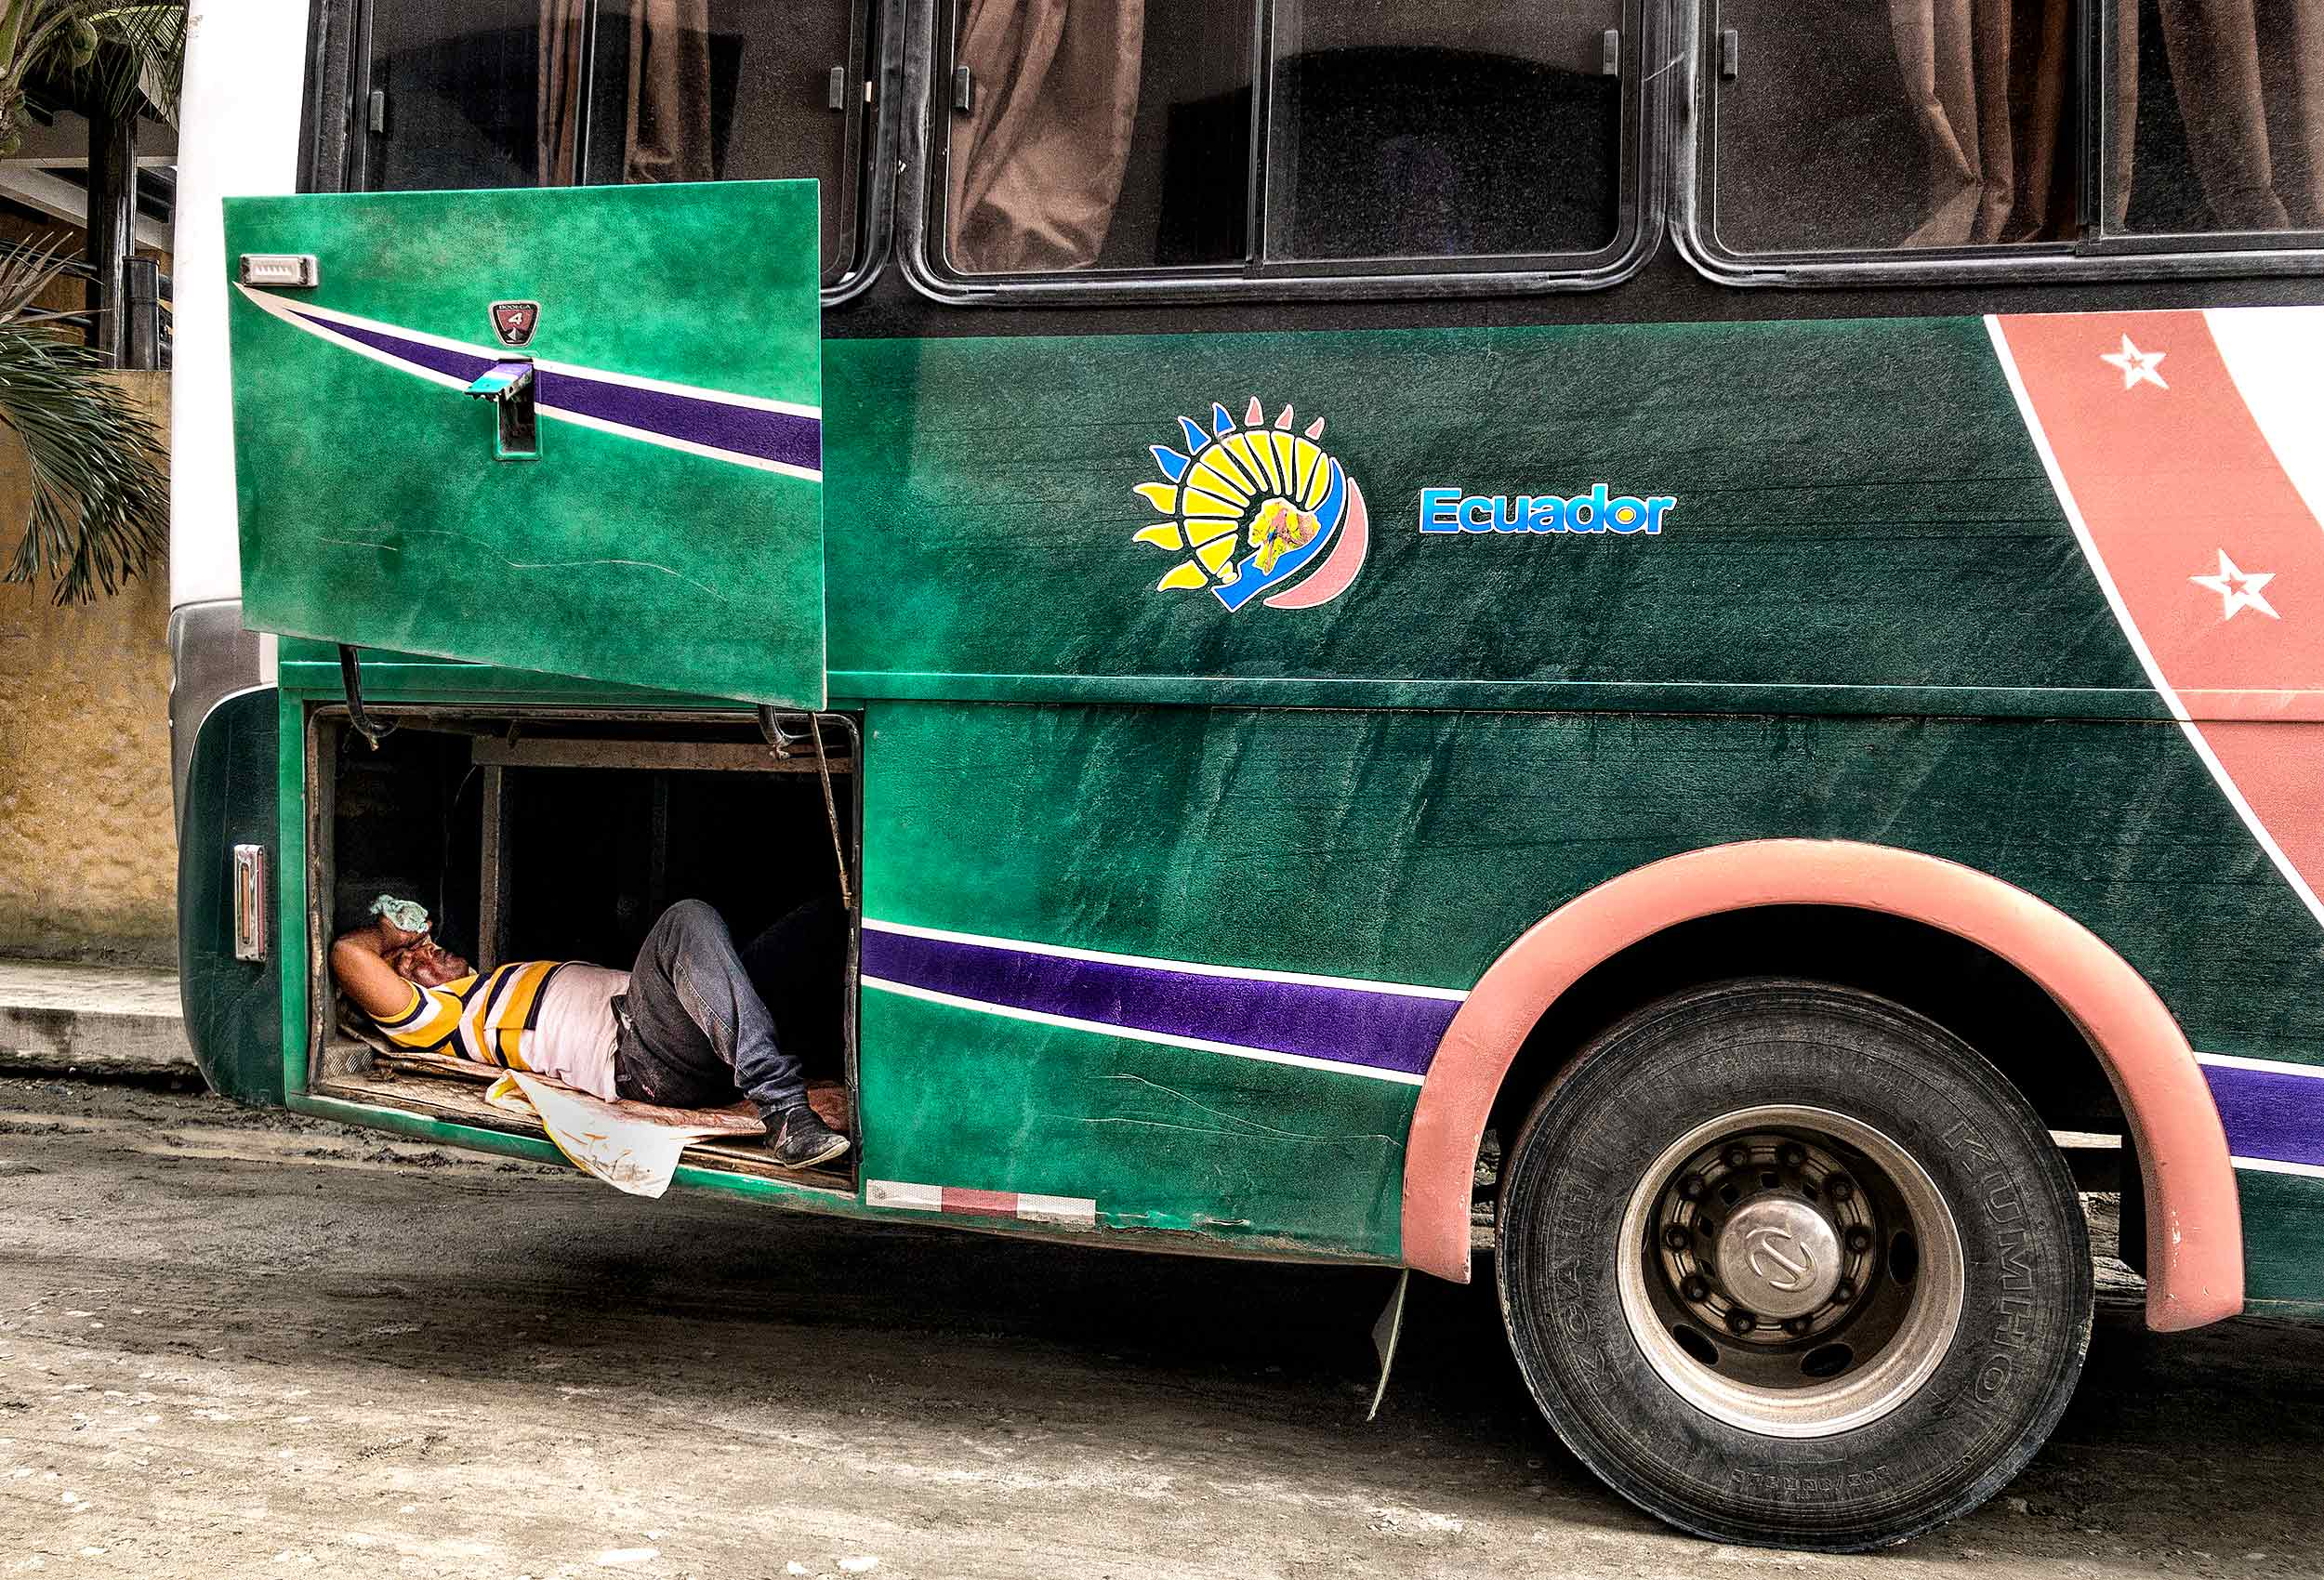 an-ecuadorian-bus-driver-napping-by-Toronto-travel-photographer-John-Hryniuk